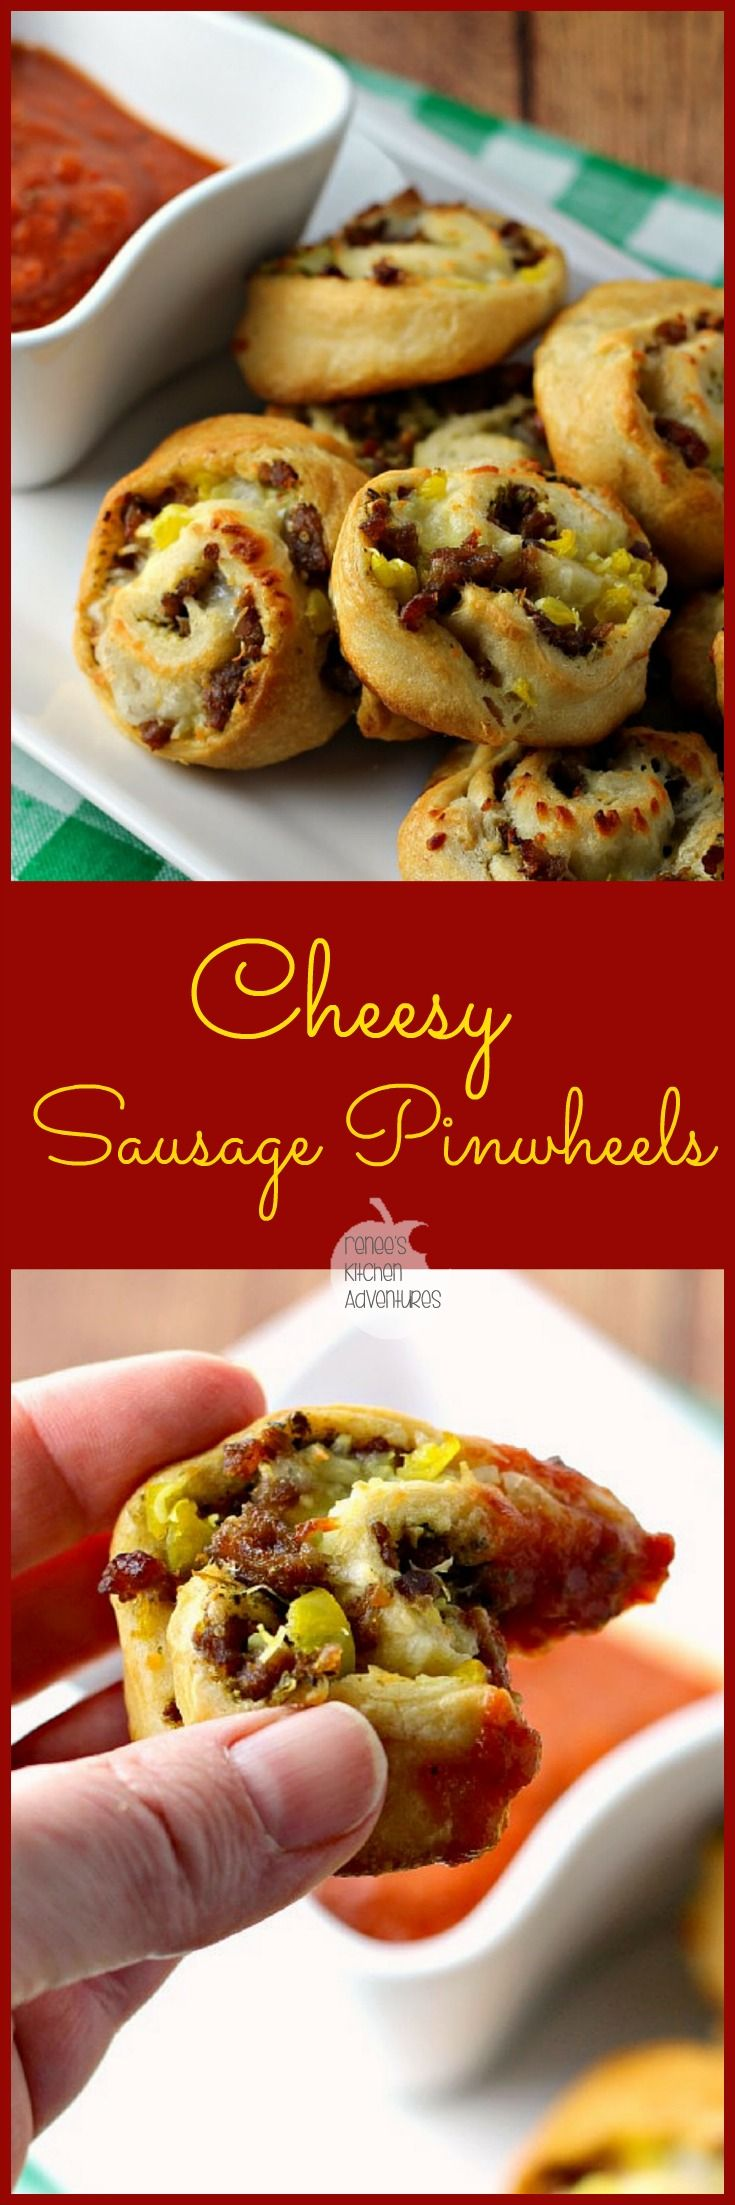 Cheesy Sausage Pinwheels|Renee's Kitchen Adventures: Easy to make, crowd-pleasing party food!